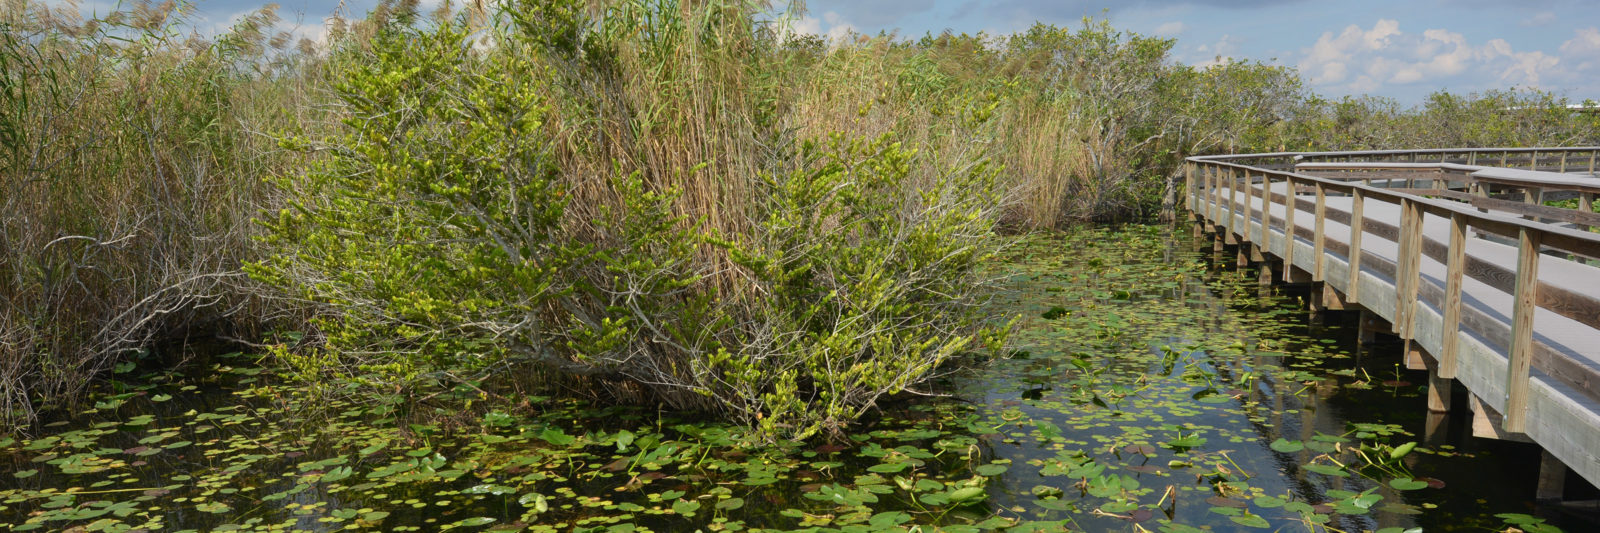 Everglades Anhinga Trail